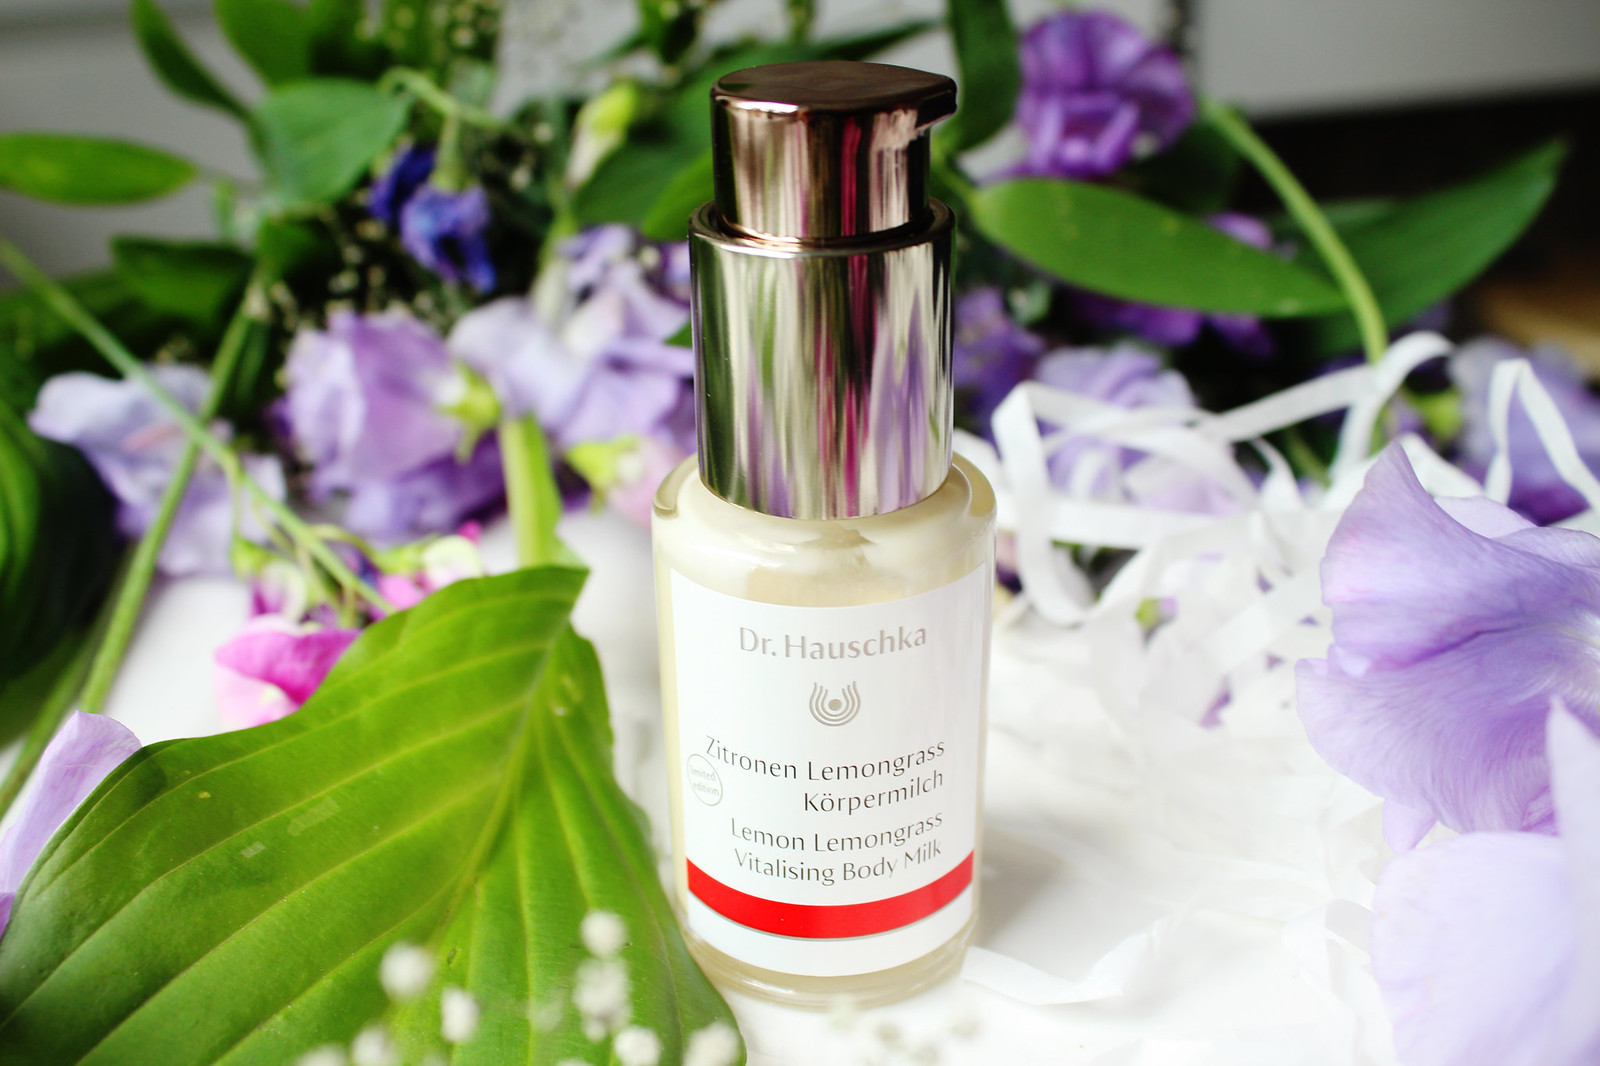 Dr Hauschka lemon-lemongrass body milk